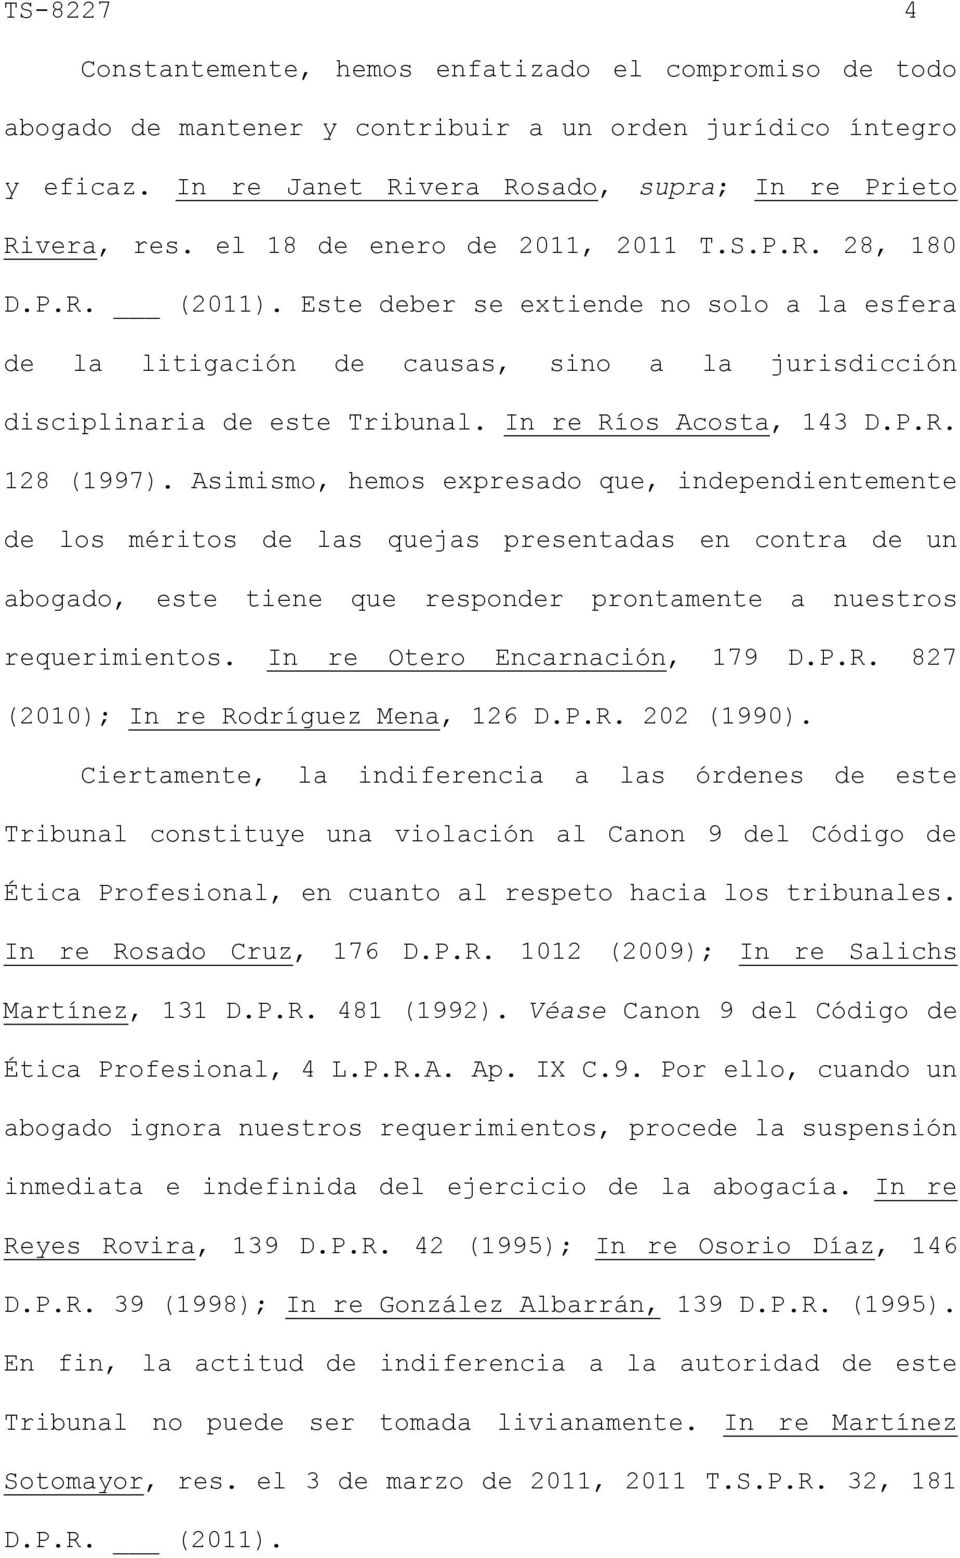 In re Ríos Acosta, 143 D.P.R. 128 (1997).